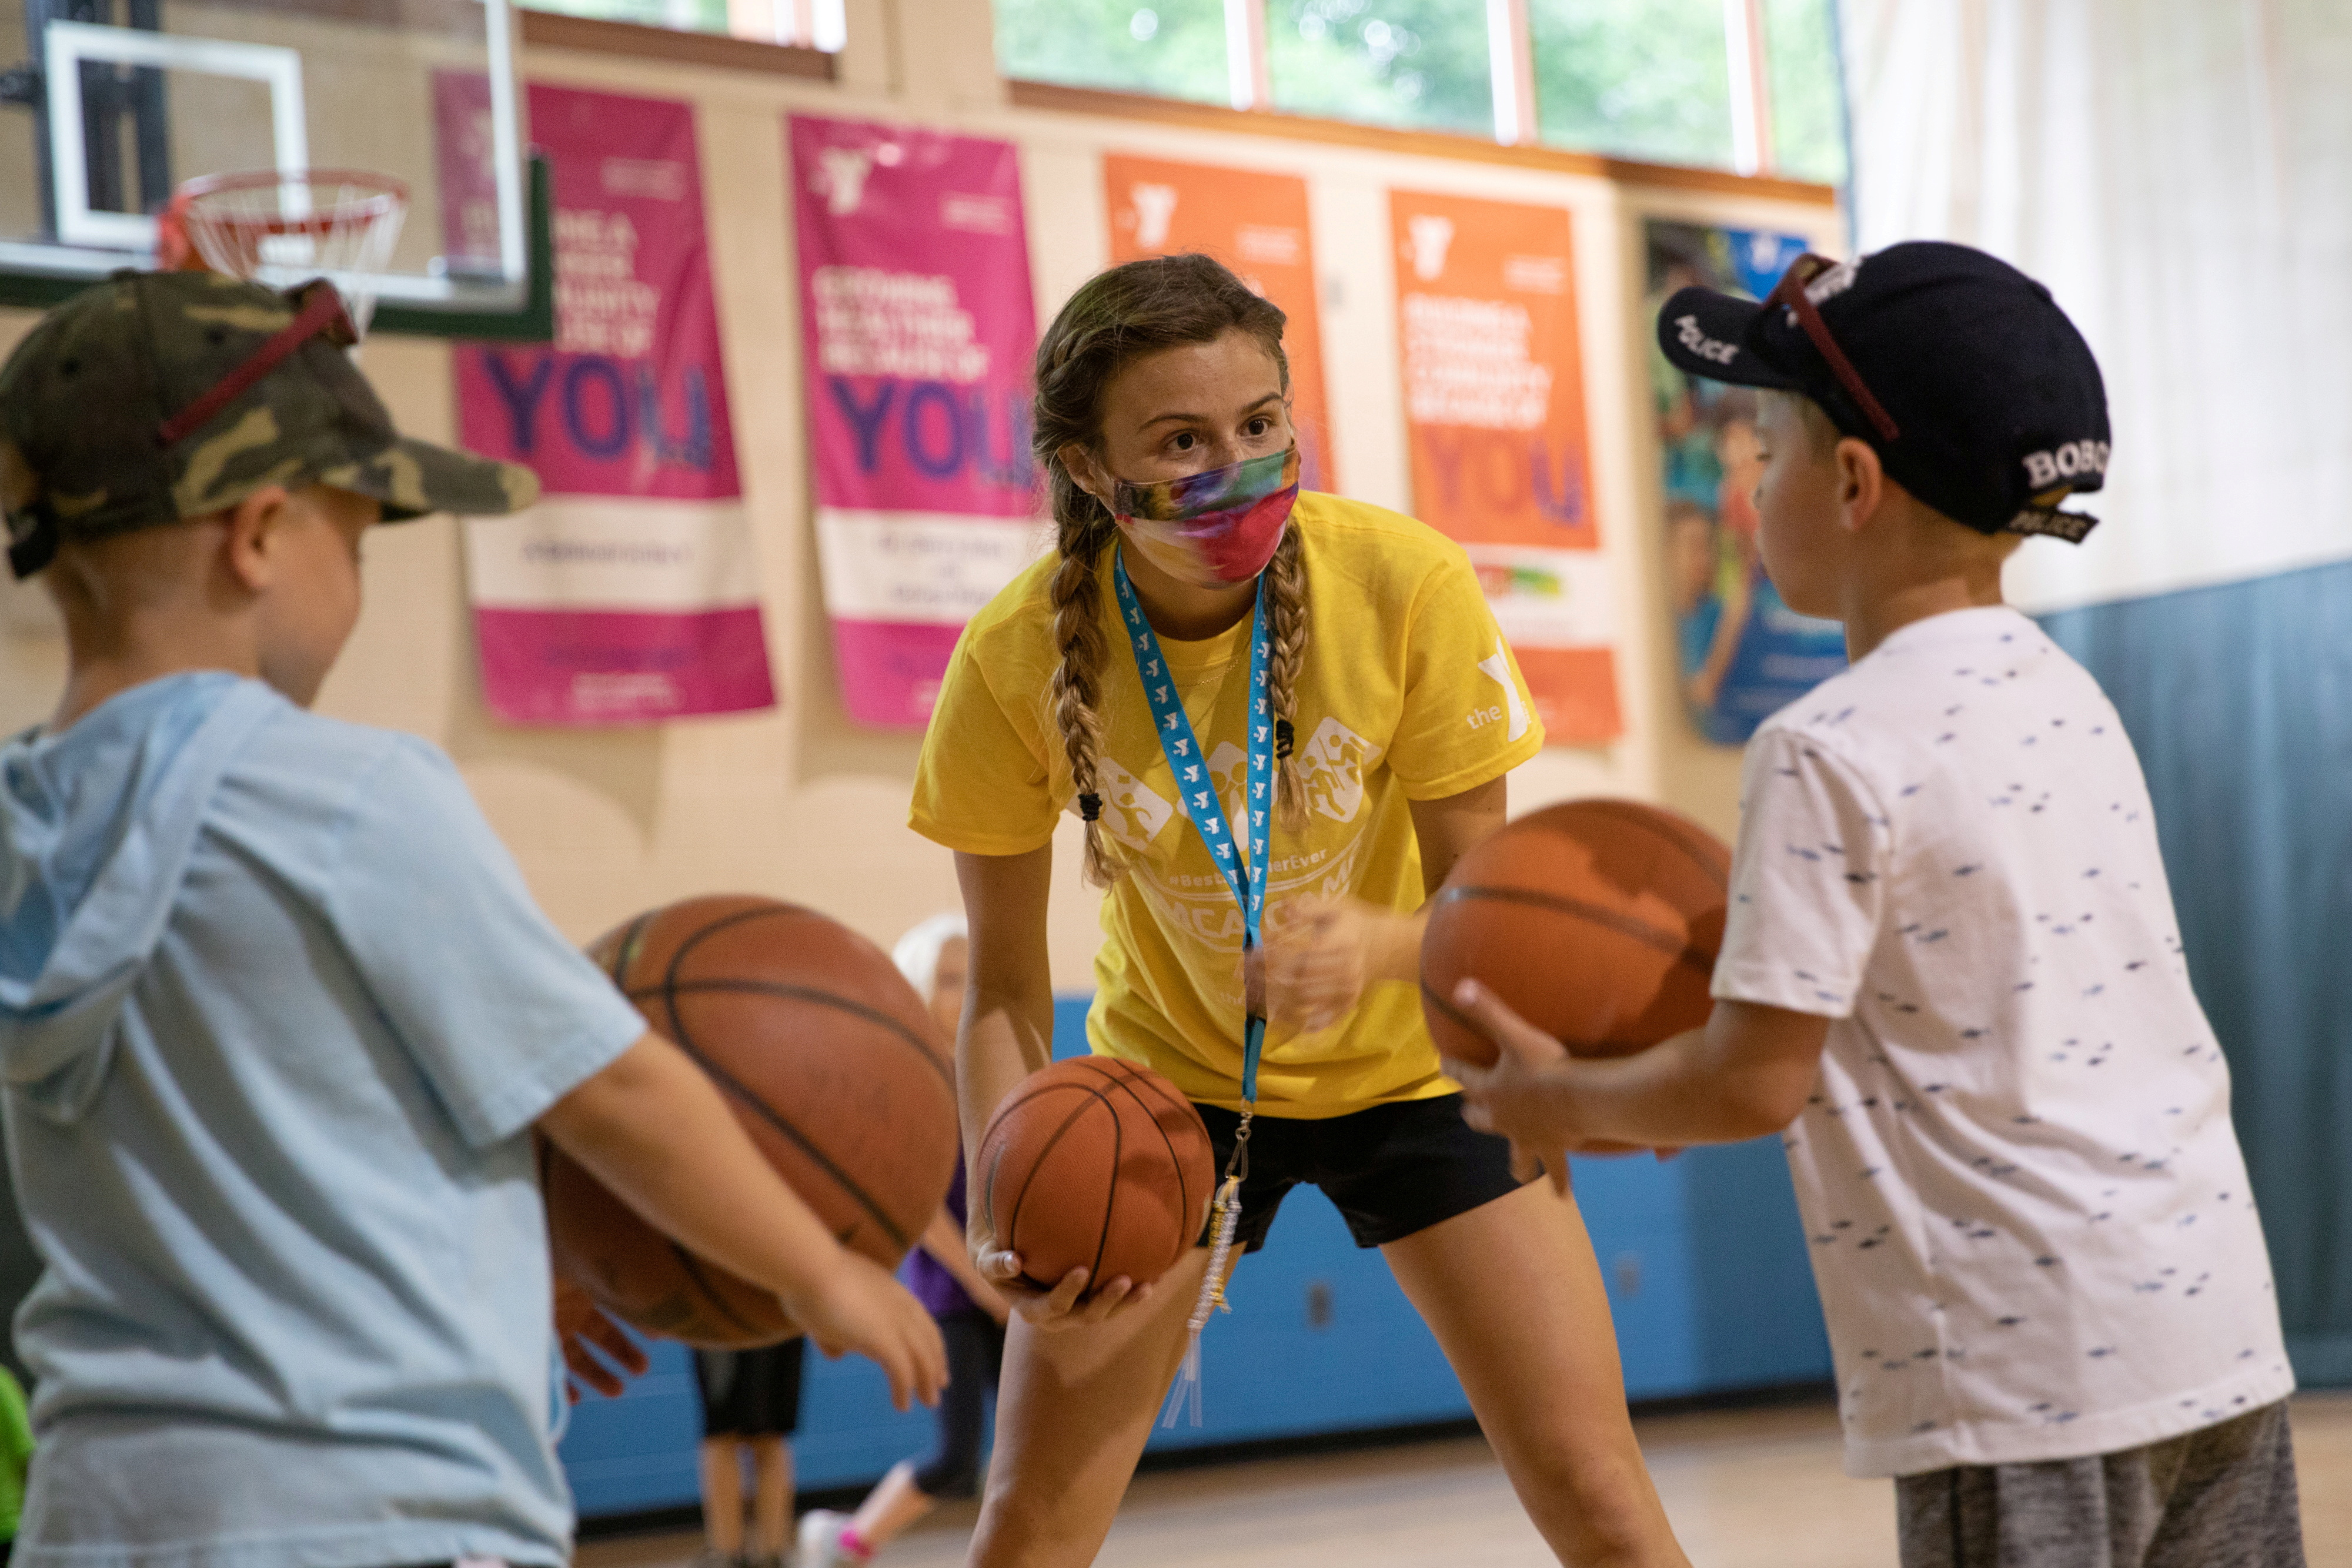 A counselor wearing a protective face mask plays with children as summer camps reopen amid the spread of coronavirus disease (COVID-19) at Carls Family YMCA summer camp in Milford, Michigan, U.S., June 23, 2020.  REUTERS/Emily Elconin